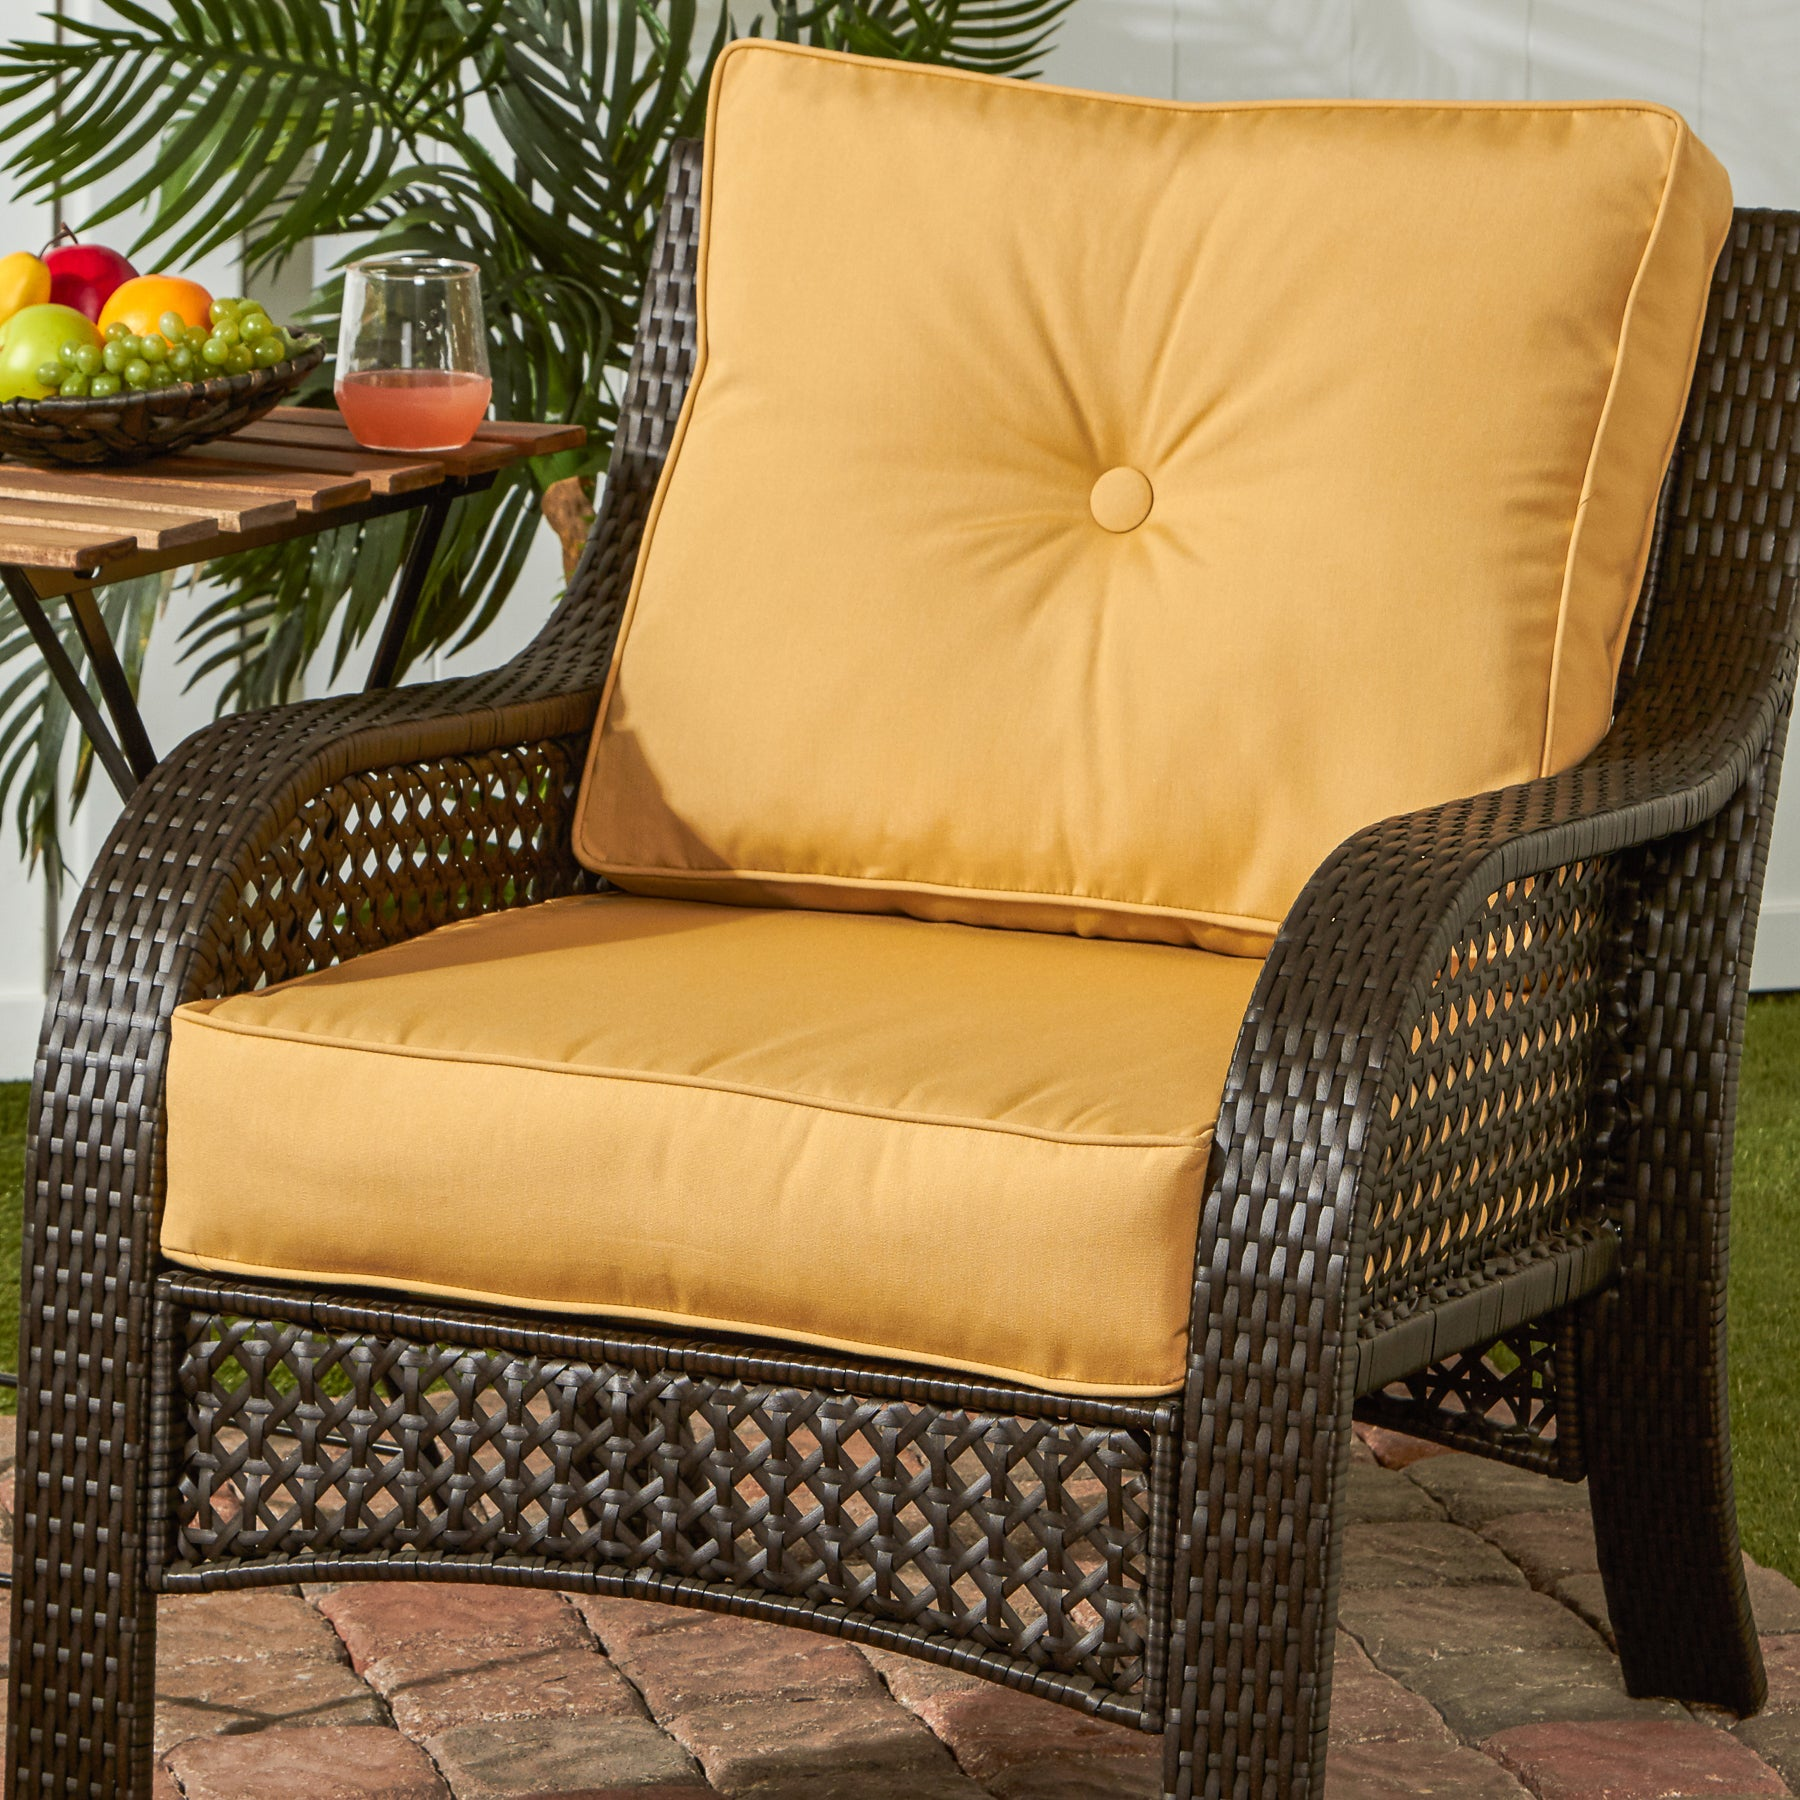 Greendale Deep Seat Outdoor Cushion Set in Sunbrella Fabric Free